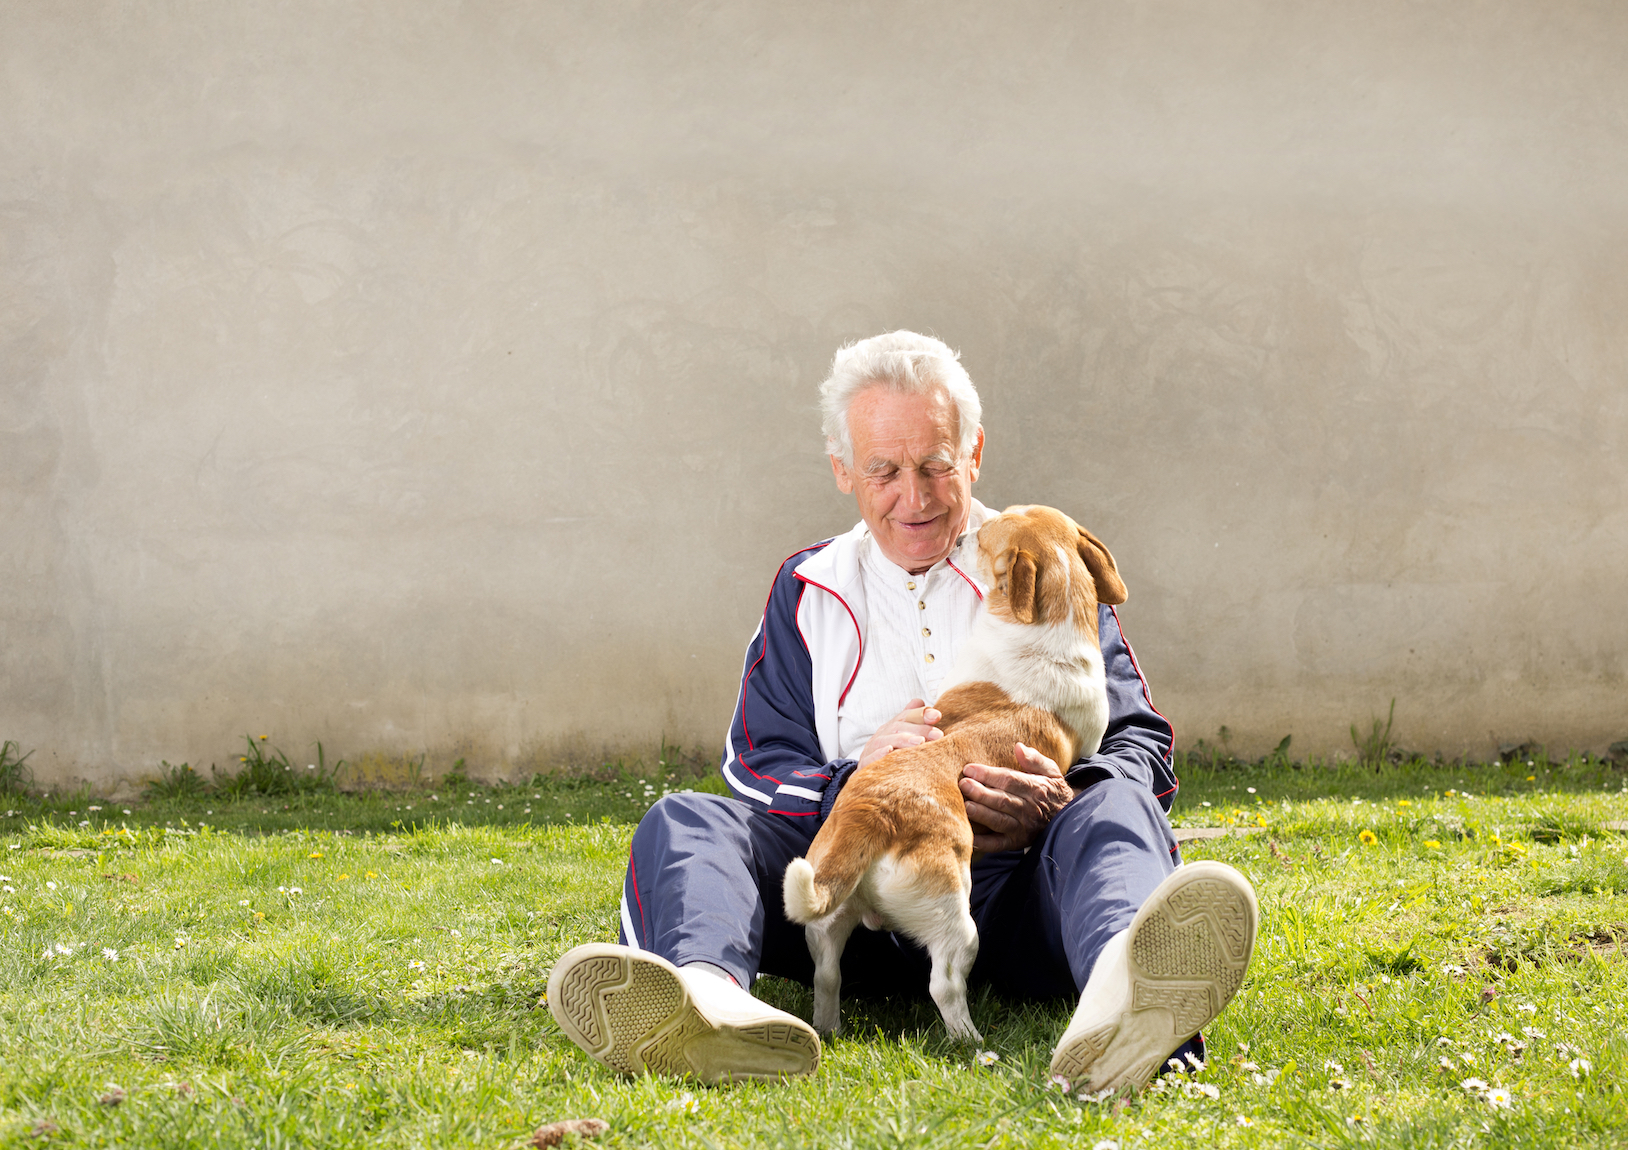 Owning a dog may help keep older adults more physically active and meet physical activity requirements, according to a new study.